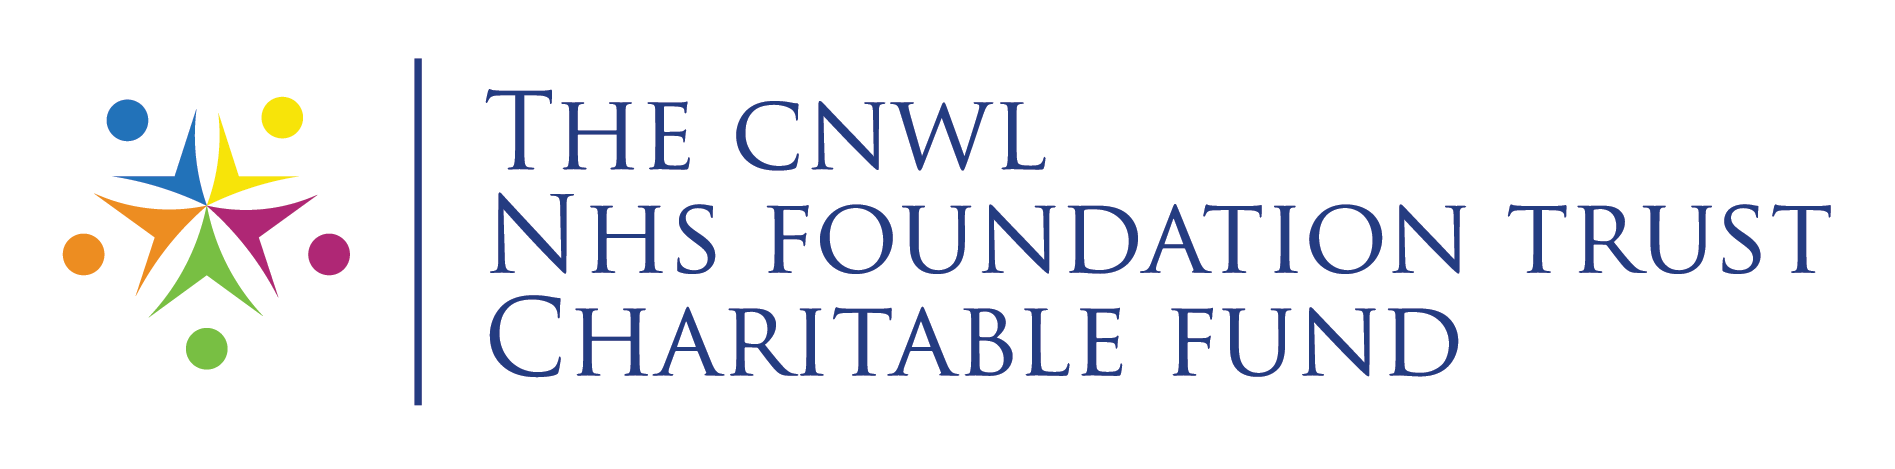 CNWL-Charitable-Fund.png